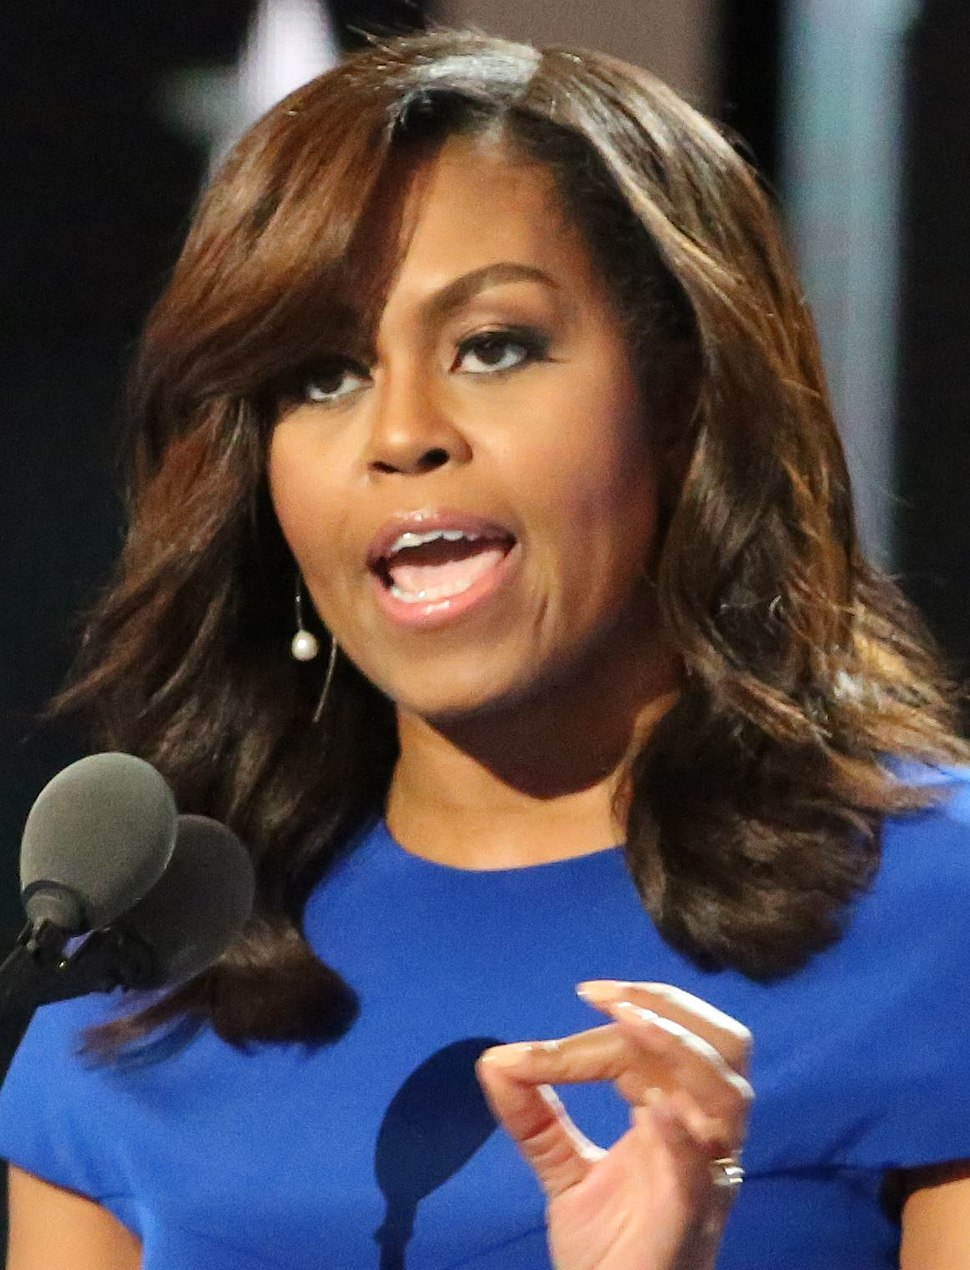 Michelle Obama at the DNC July 2016 (cropped)